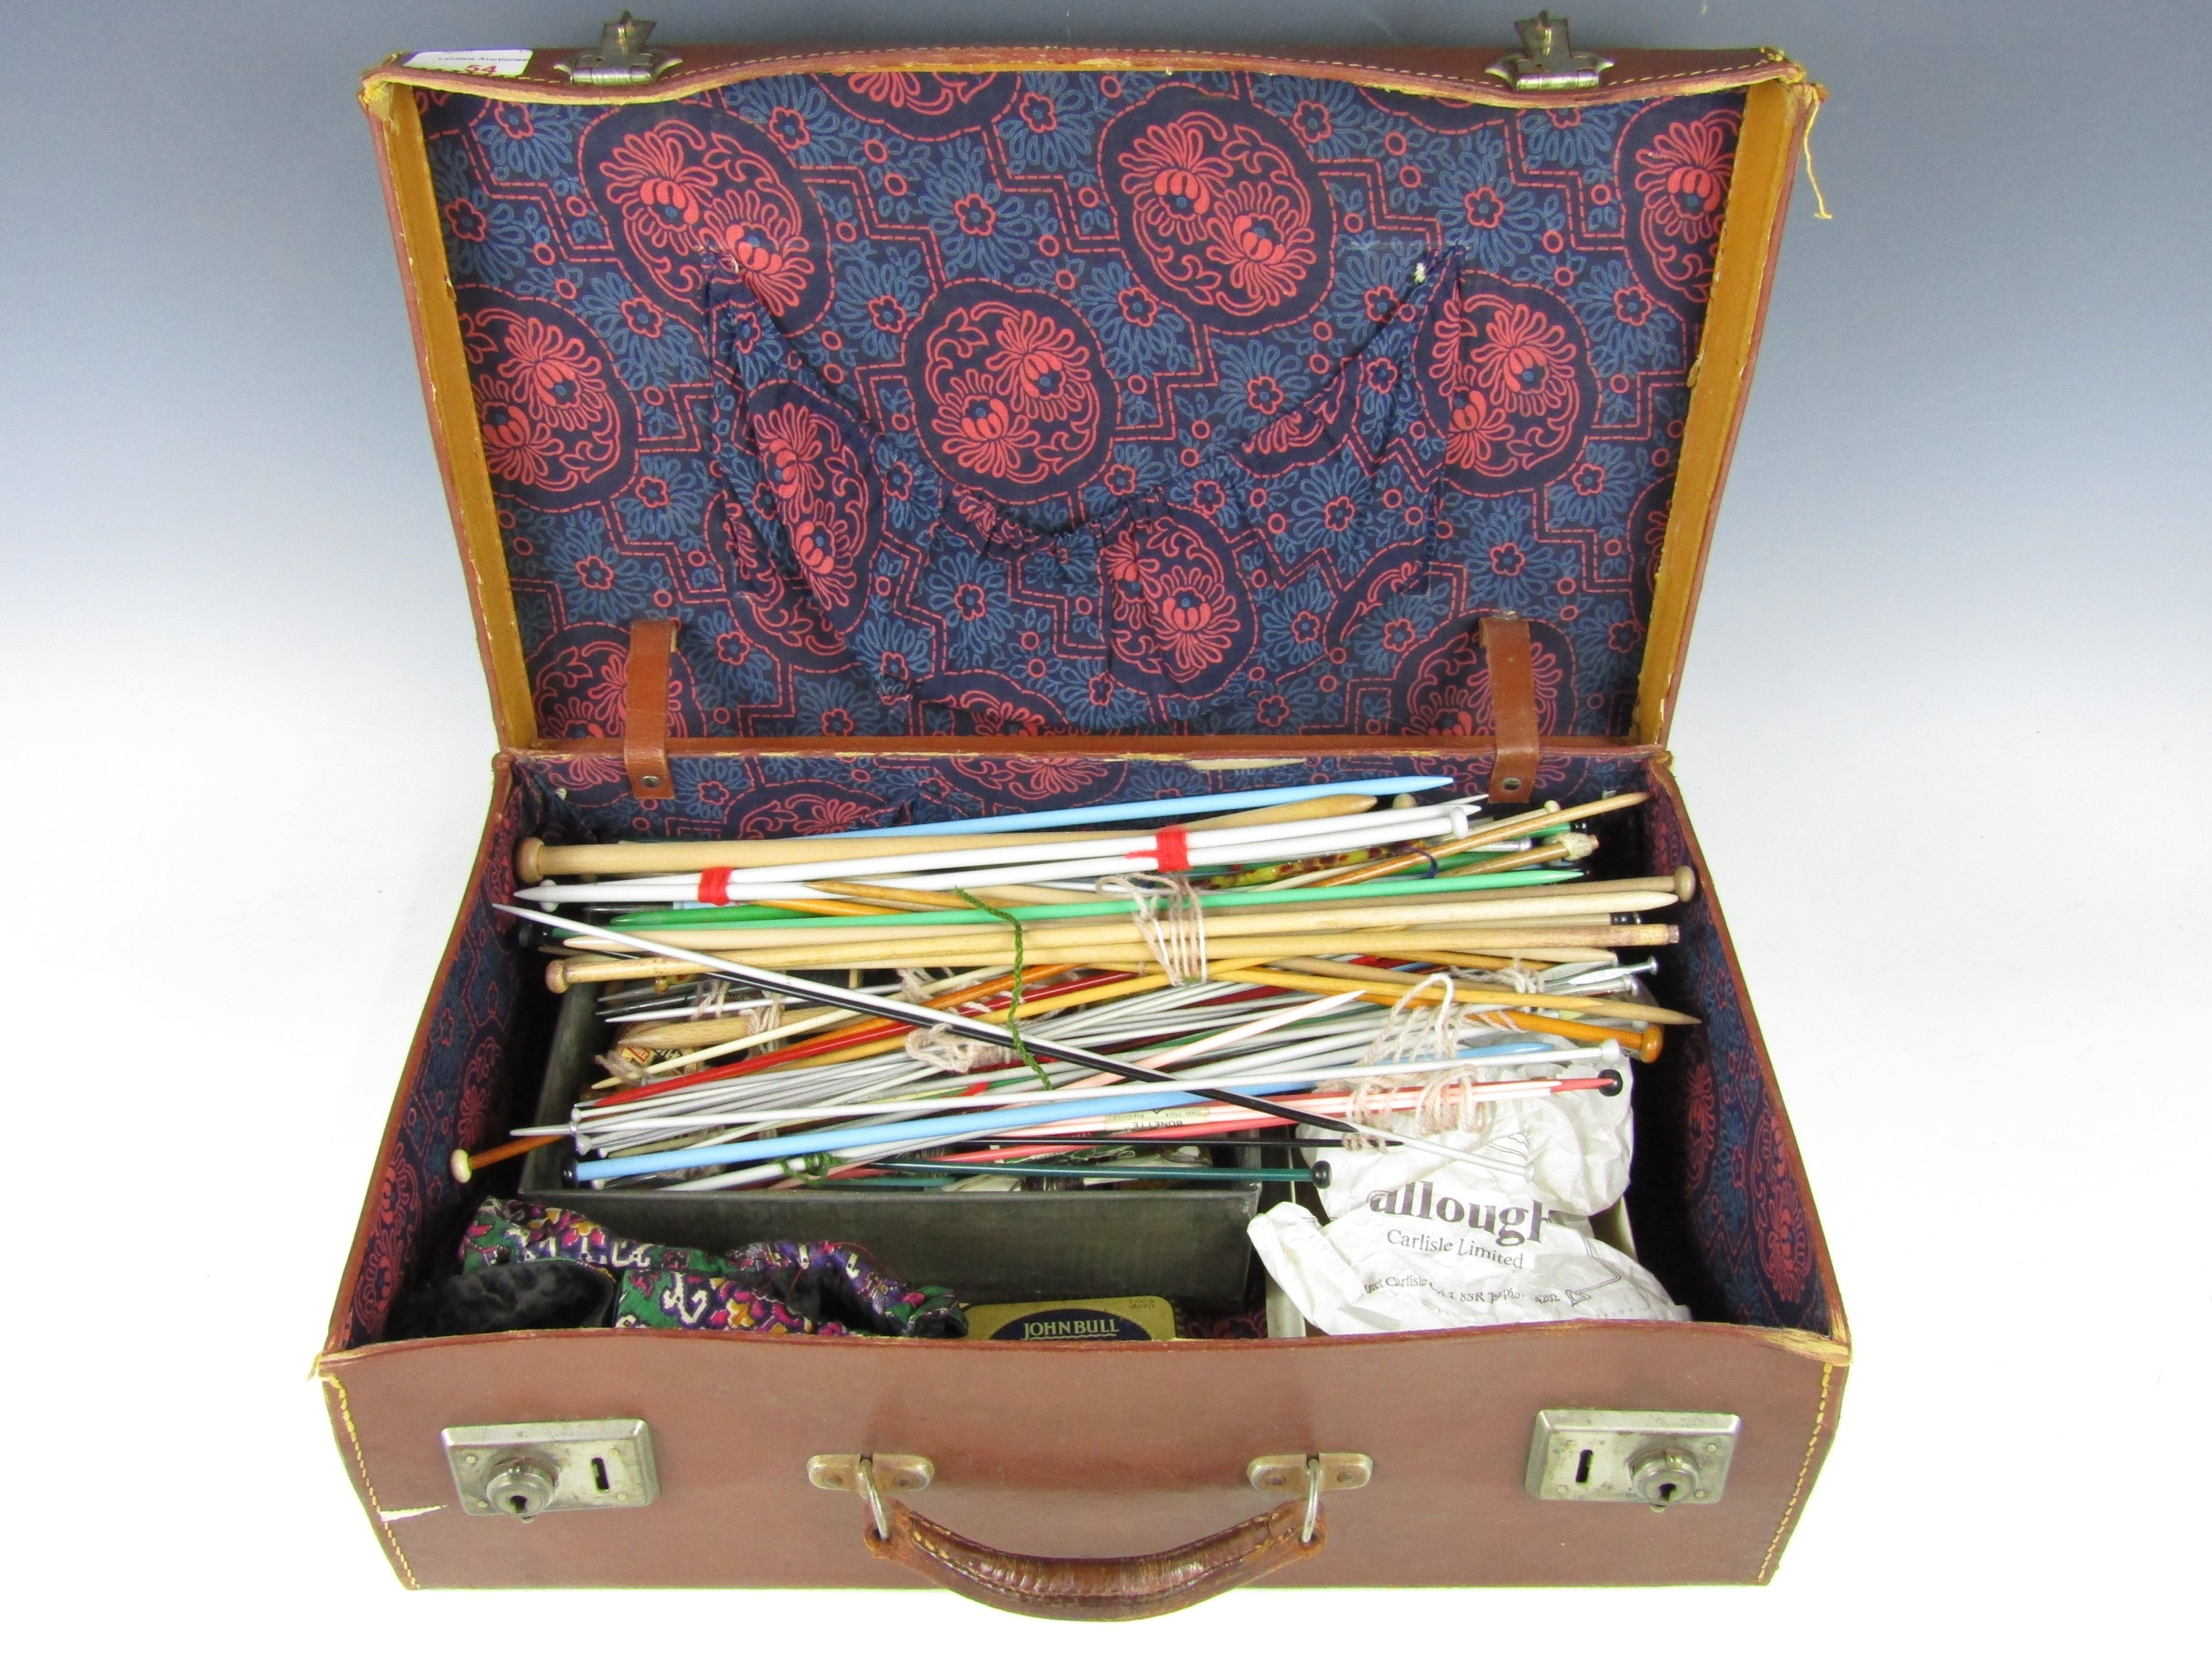 Lot 54 - A vintage hide case containing sundry sewing and knitting accessories